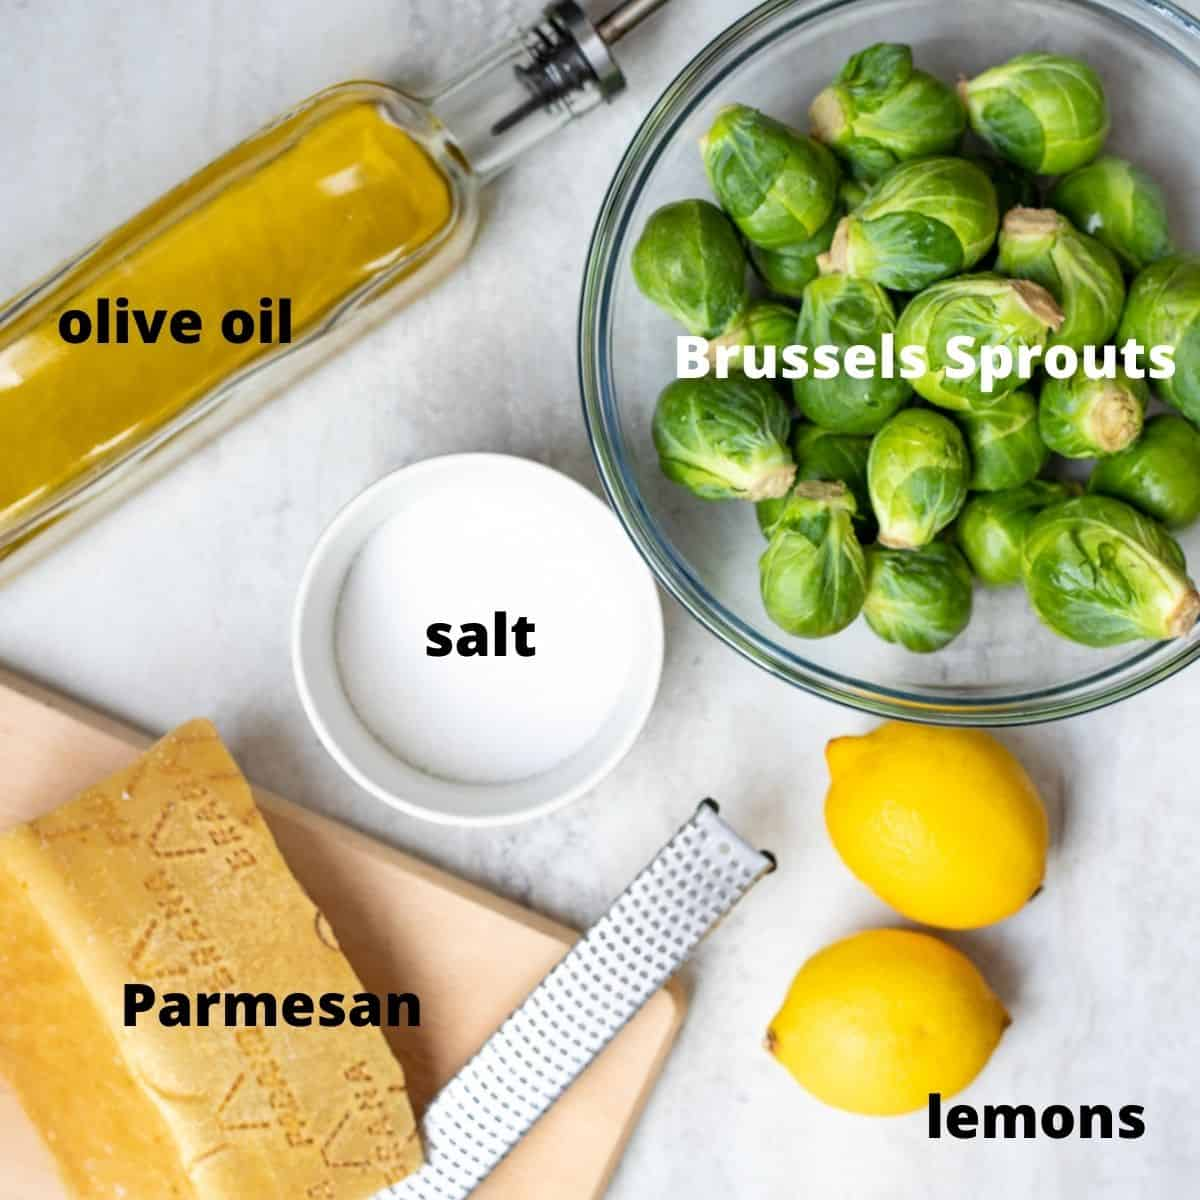 Ingredients for Brussels Sprouts Salad labeled